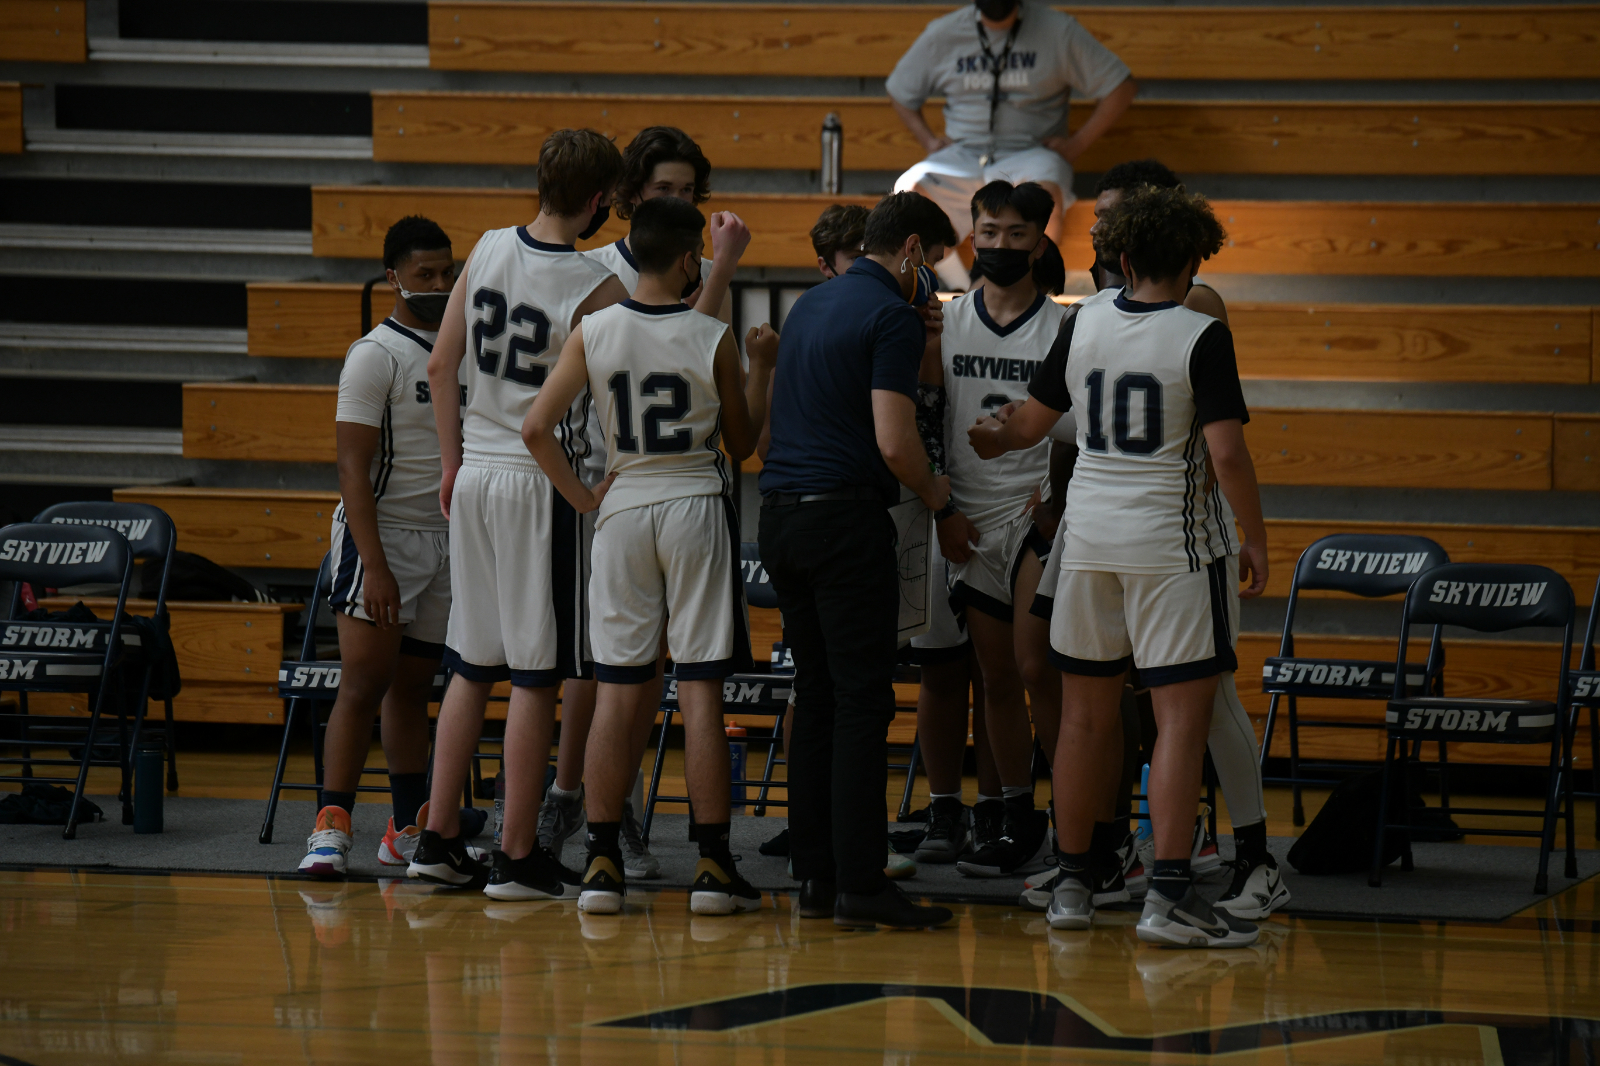 Skyview Freshmen Basketball v Mt. View – April 20, 2021